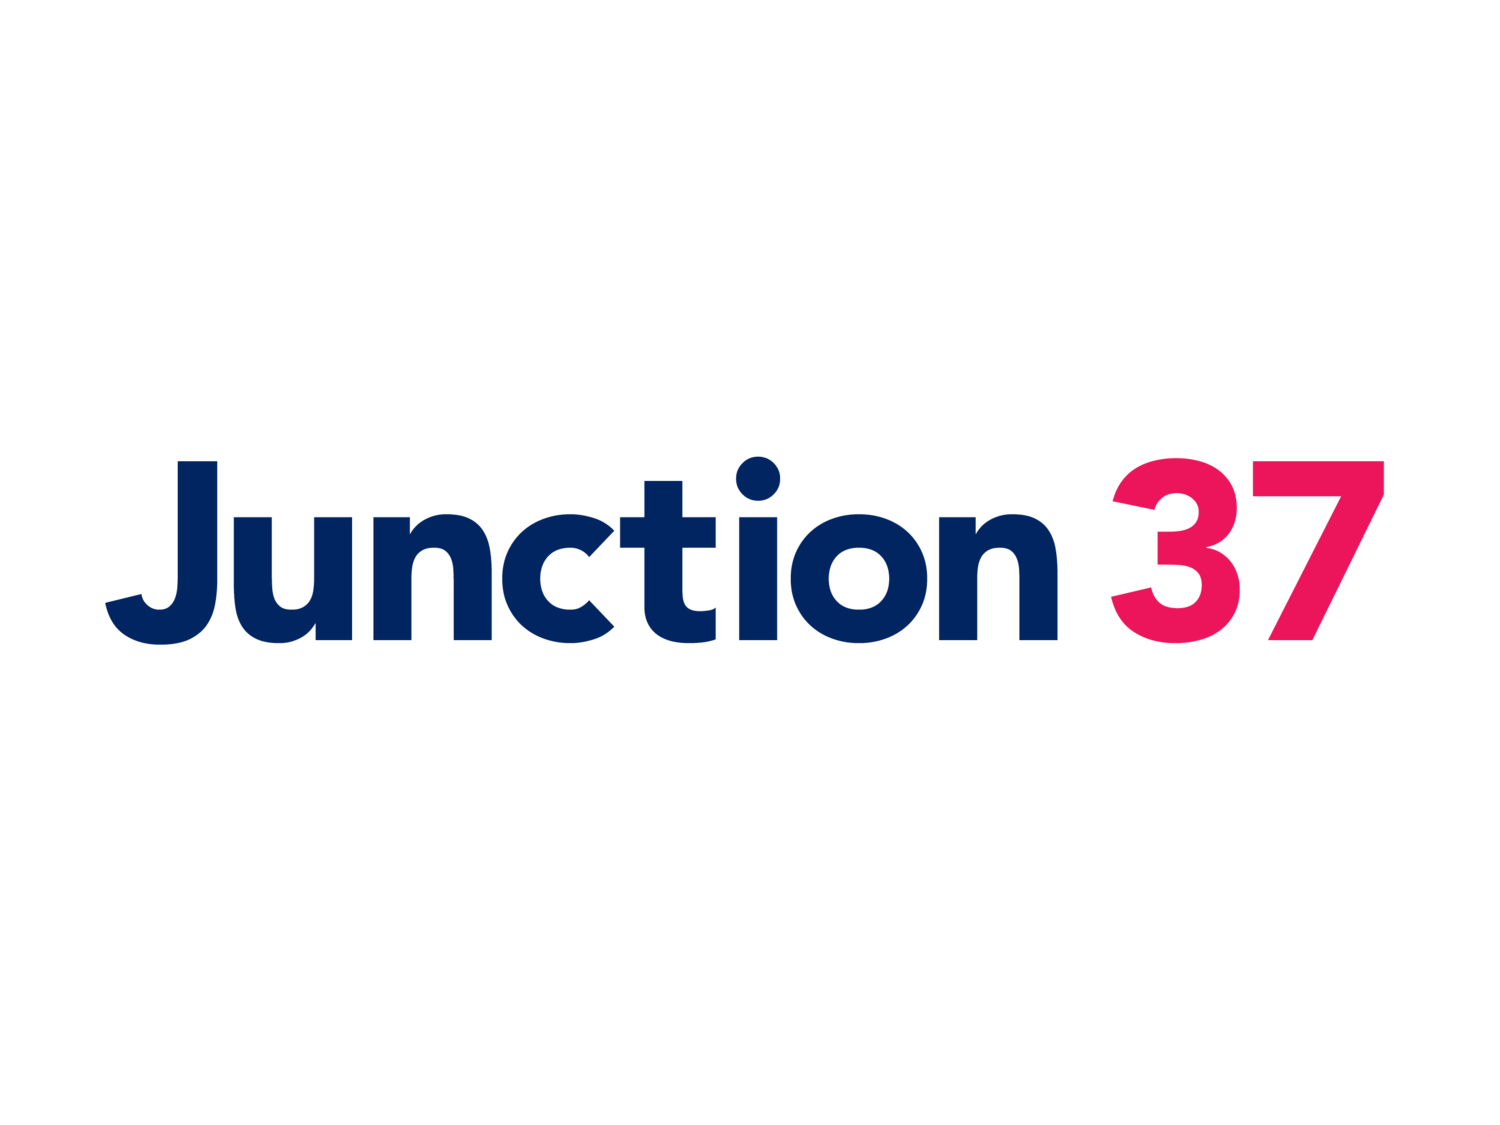 Junction 37 | DARE TO BE DIFFERENT